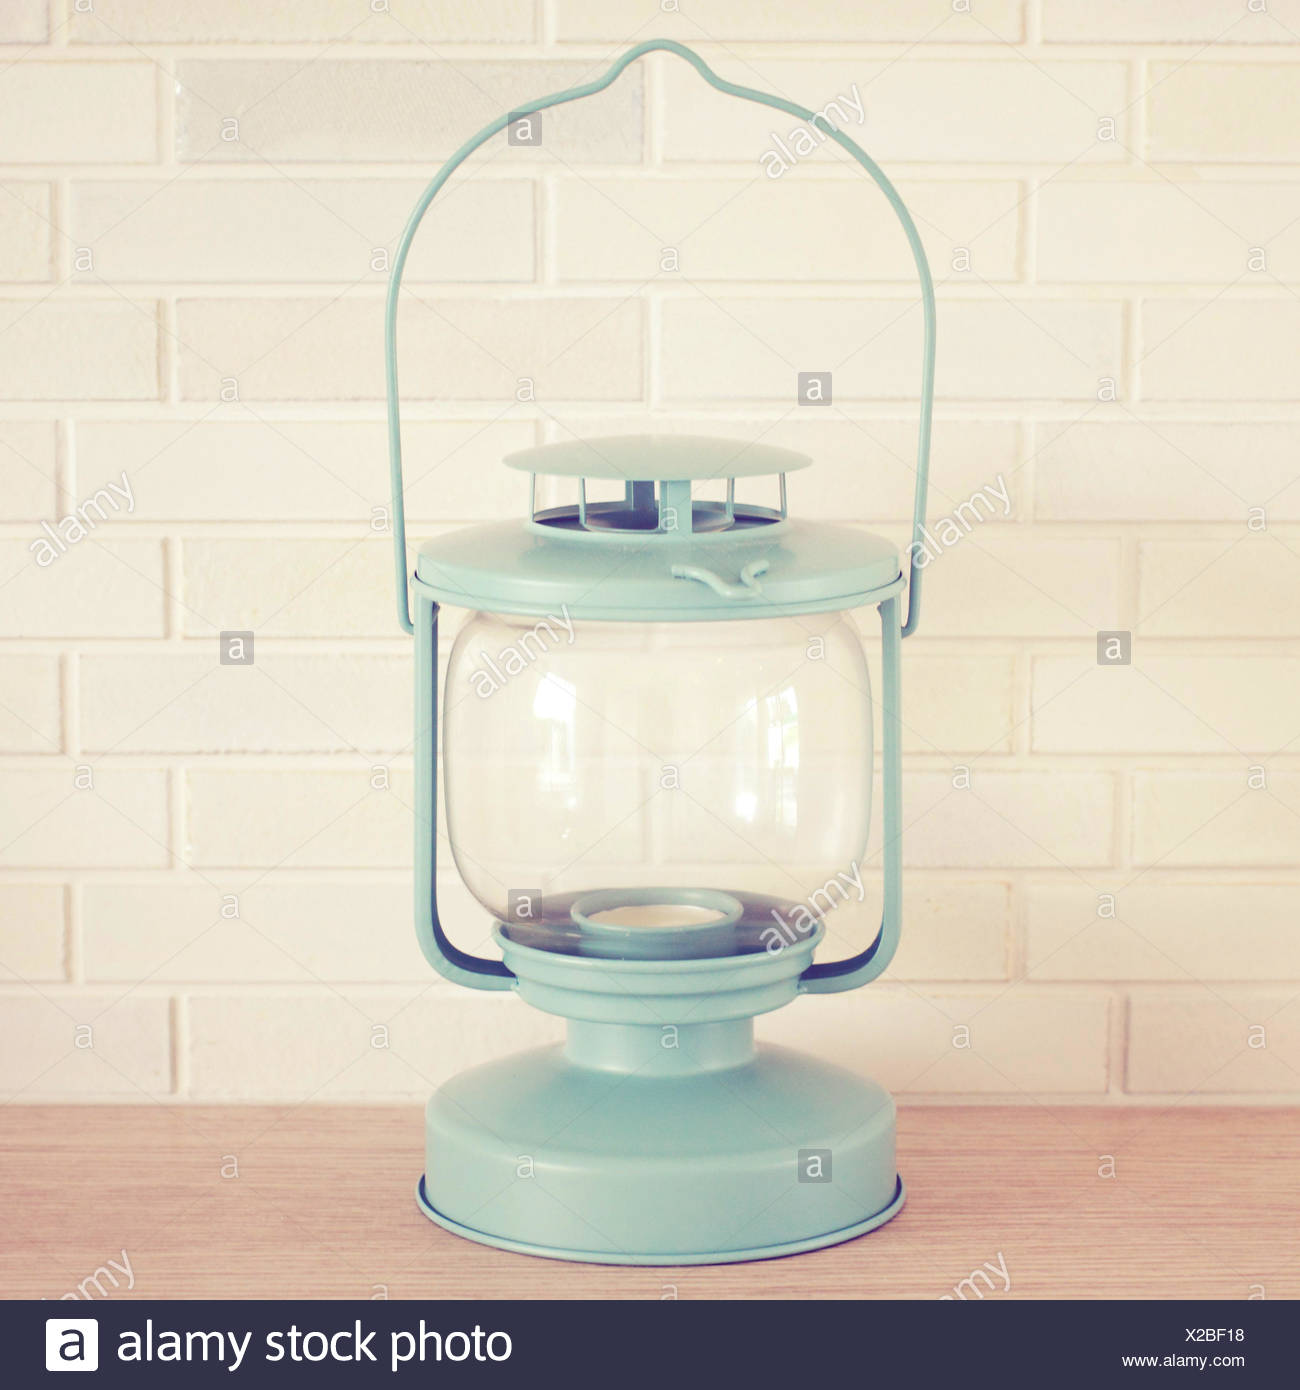 Vintage lamp on brick wall with retro filter effect - Stock Image